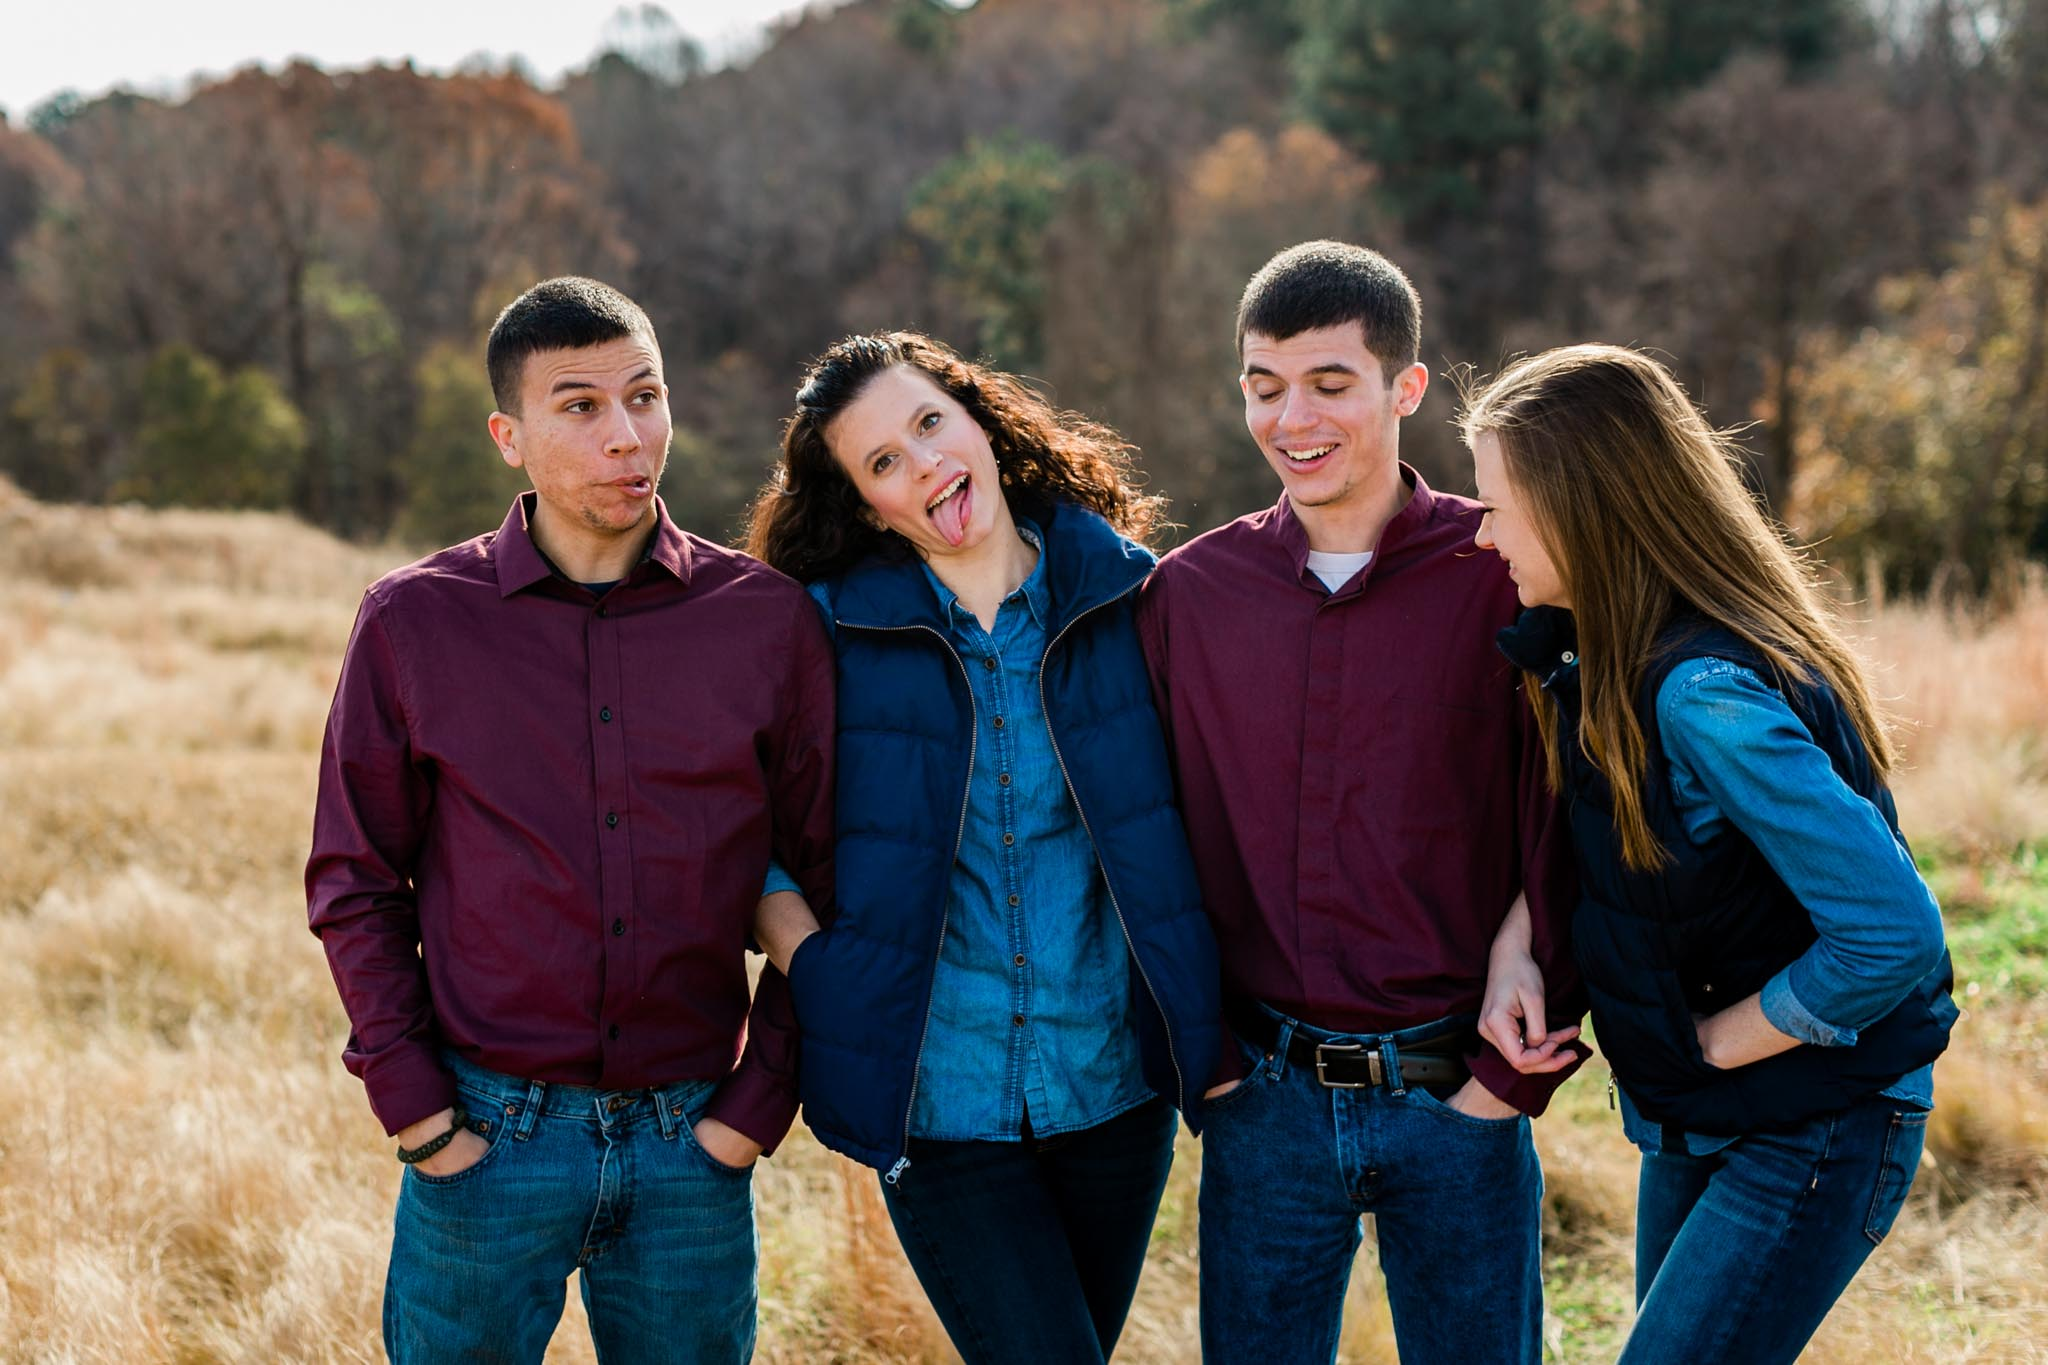 Silly faces during sibling portrait session at NCMA | Raleigh Family Photographer | By G. Lin Photography